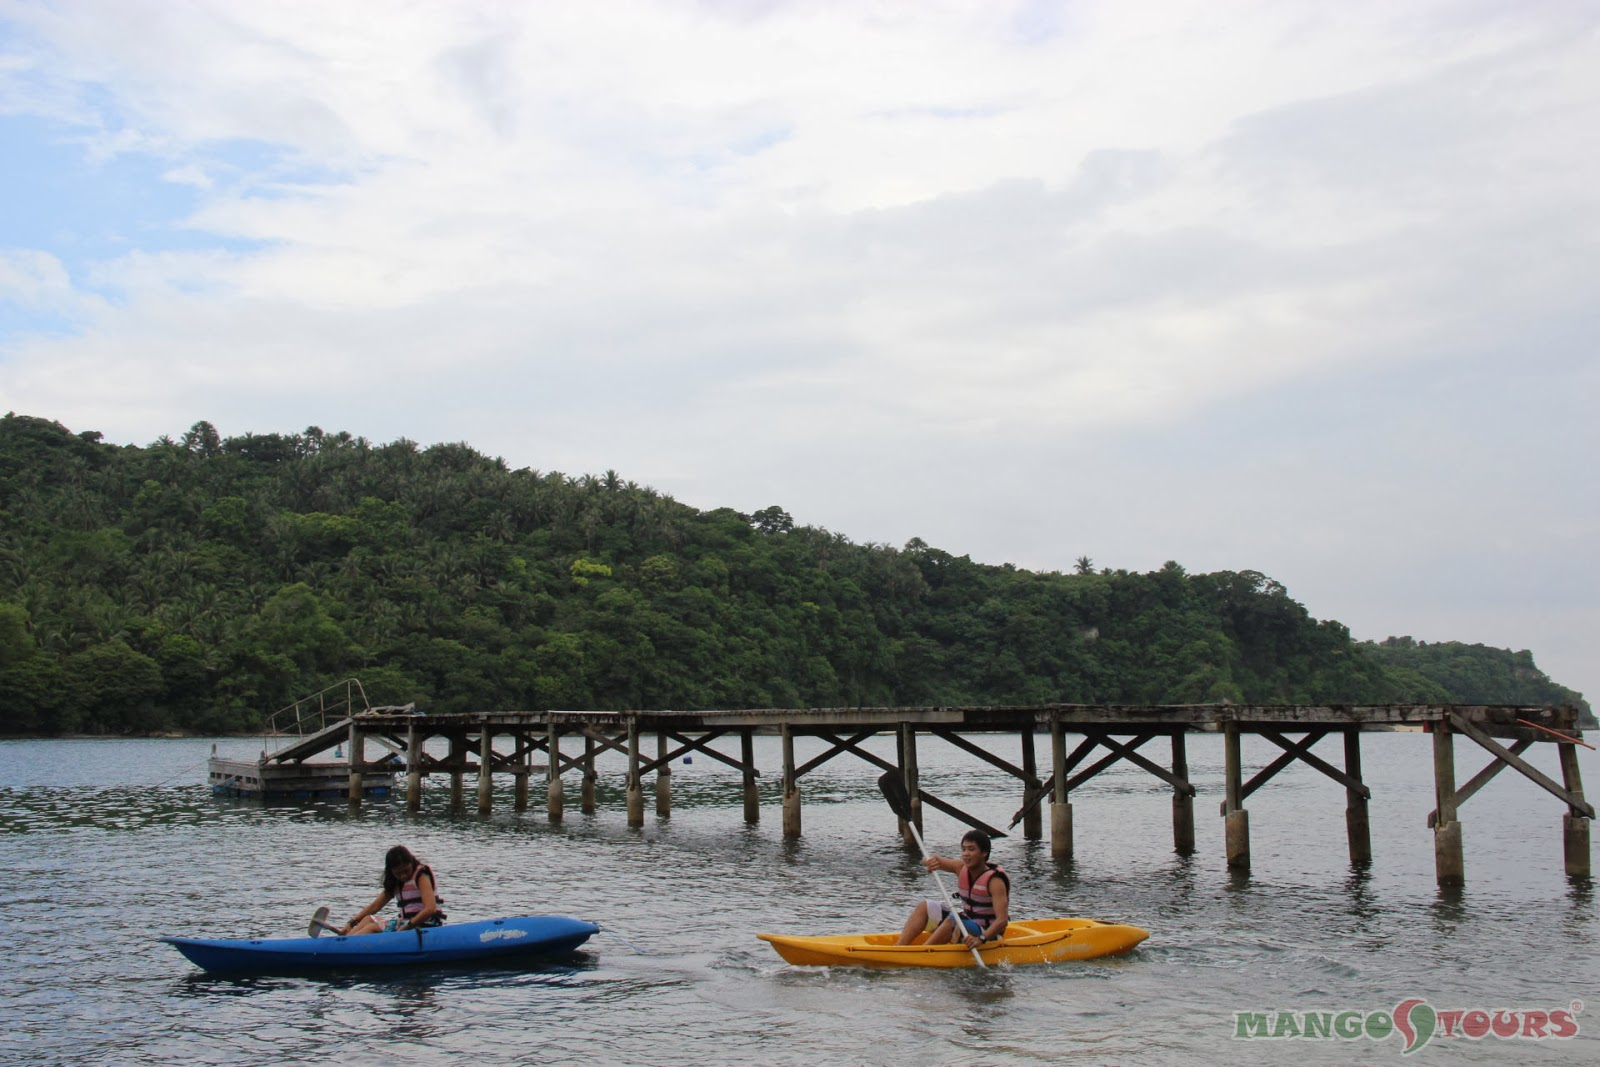 Puerto Galera Buri Resort & Spa Restaurant Mango Tours Philippines Kayak Water sport activities